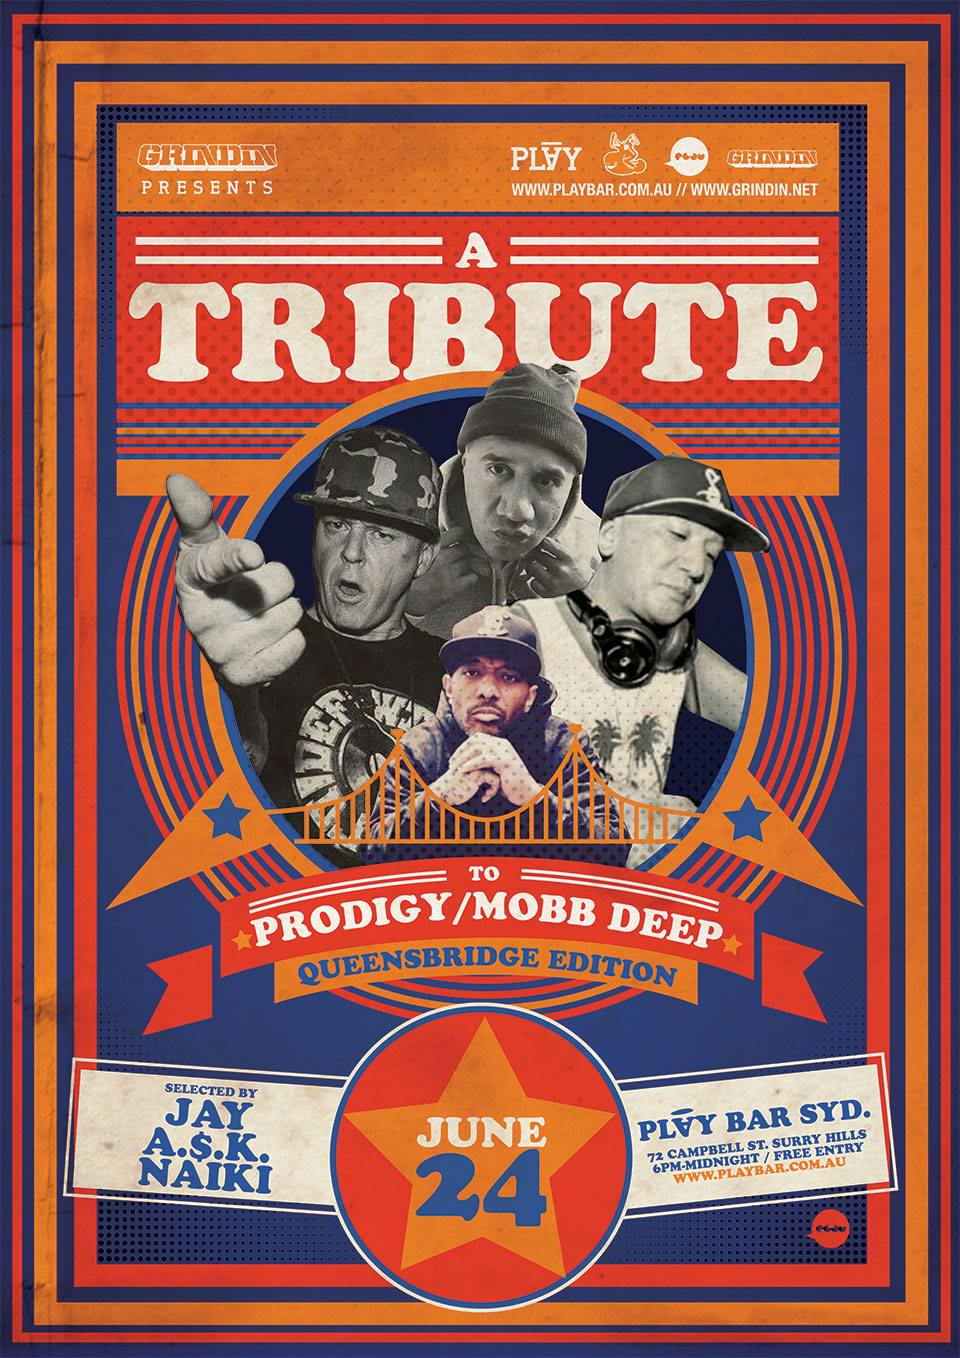 A TRIBUTE TO PRODIGY & MOBB DEEP – QUEENSBRIDGE EDITION @ PLAY BAR, SYDNEY